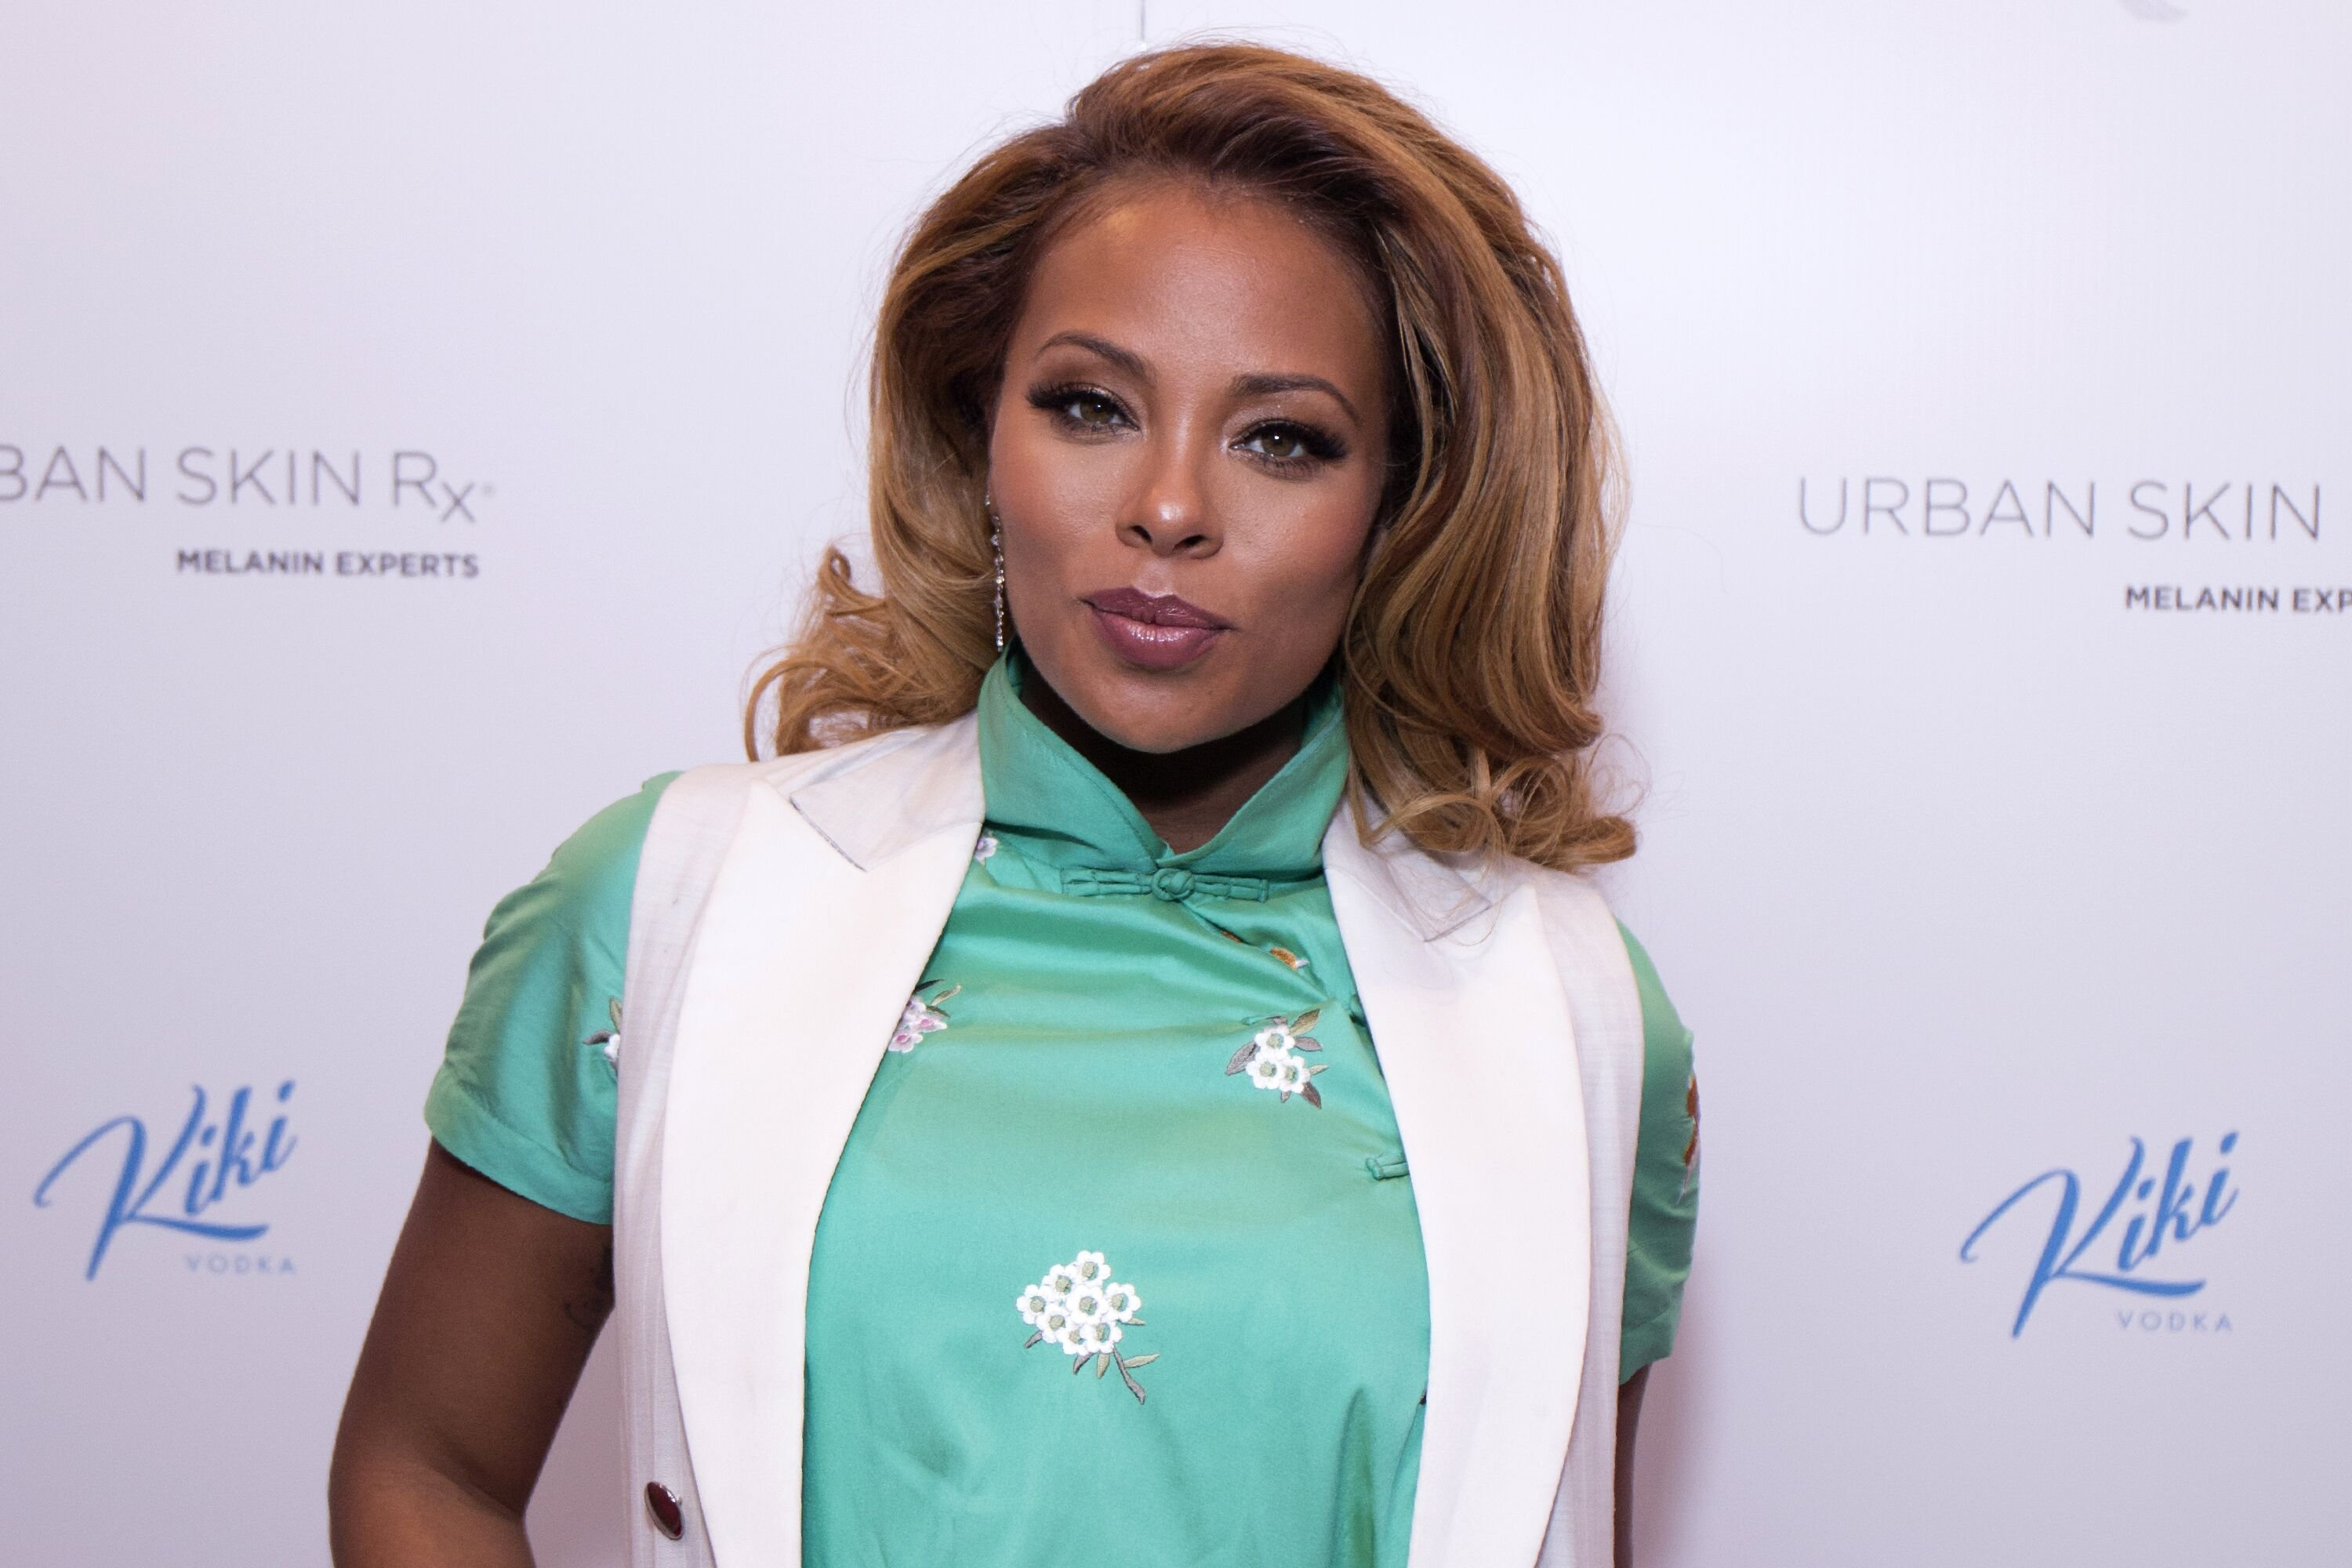 Eva Marcille attends the launch of Urban Skin RX on January 18, 2018 in New York City   Source: Getty Images